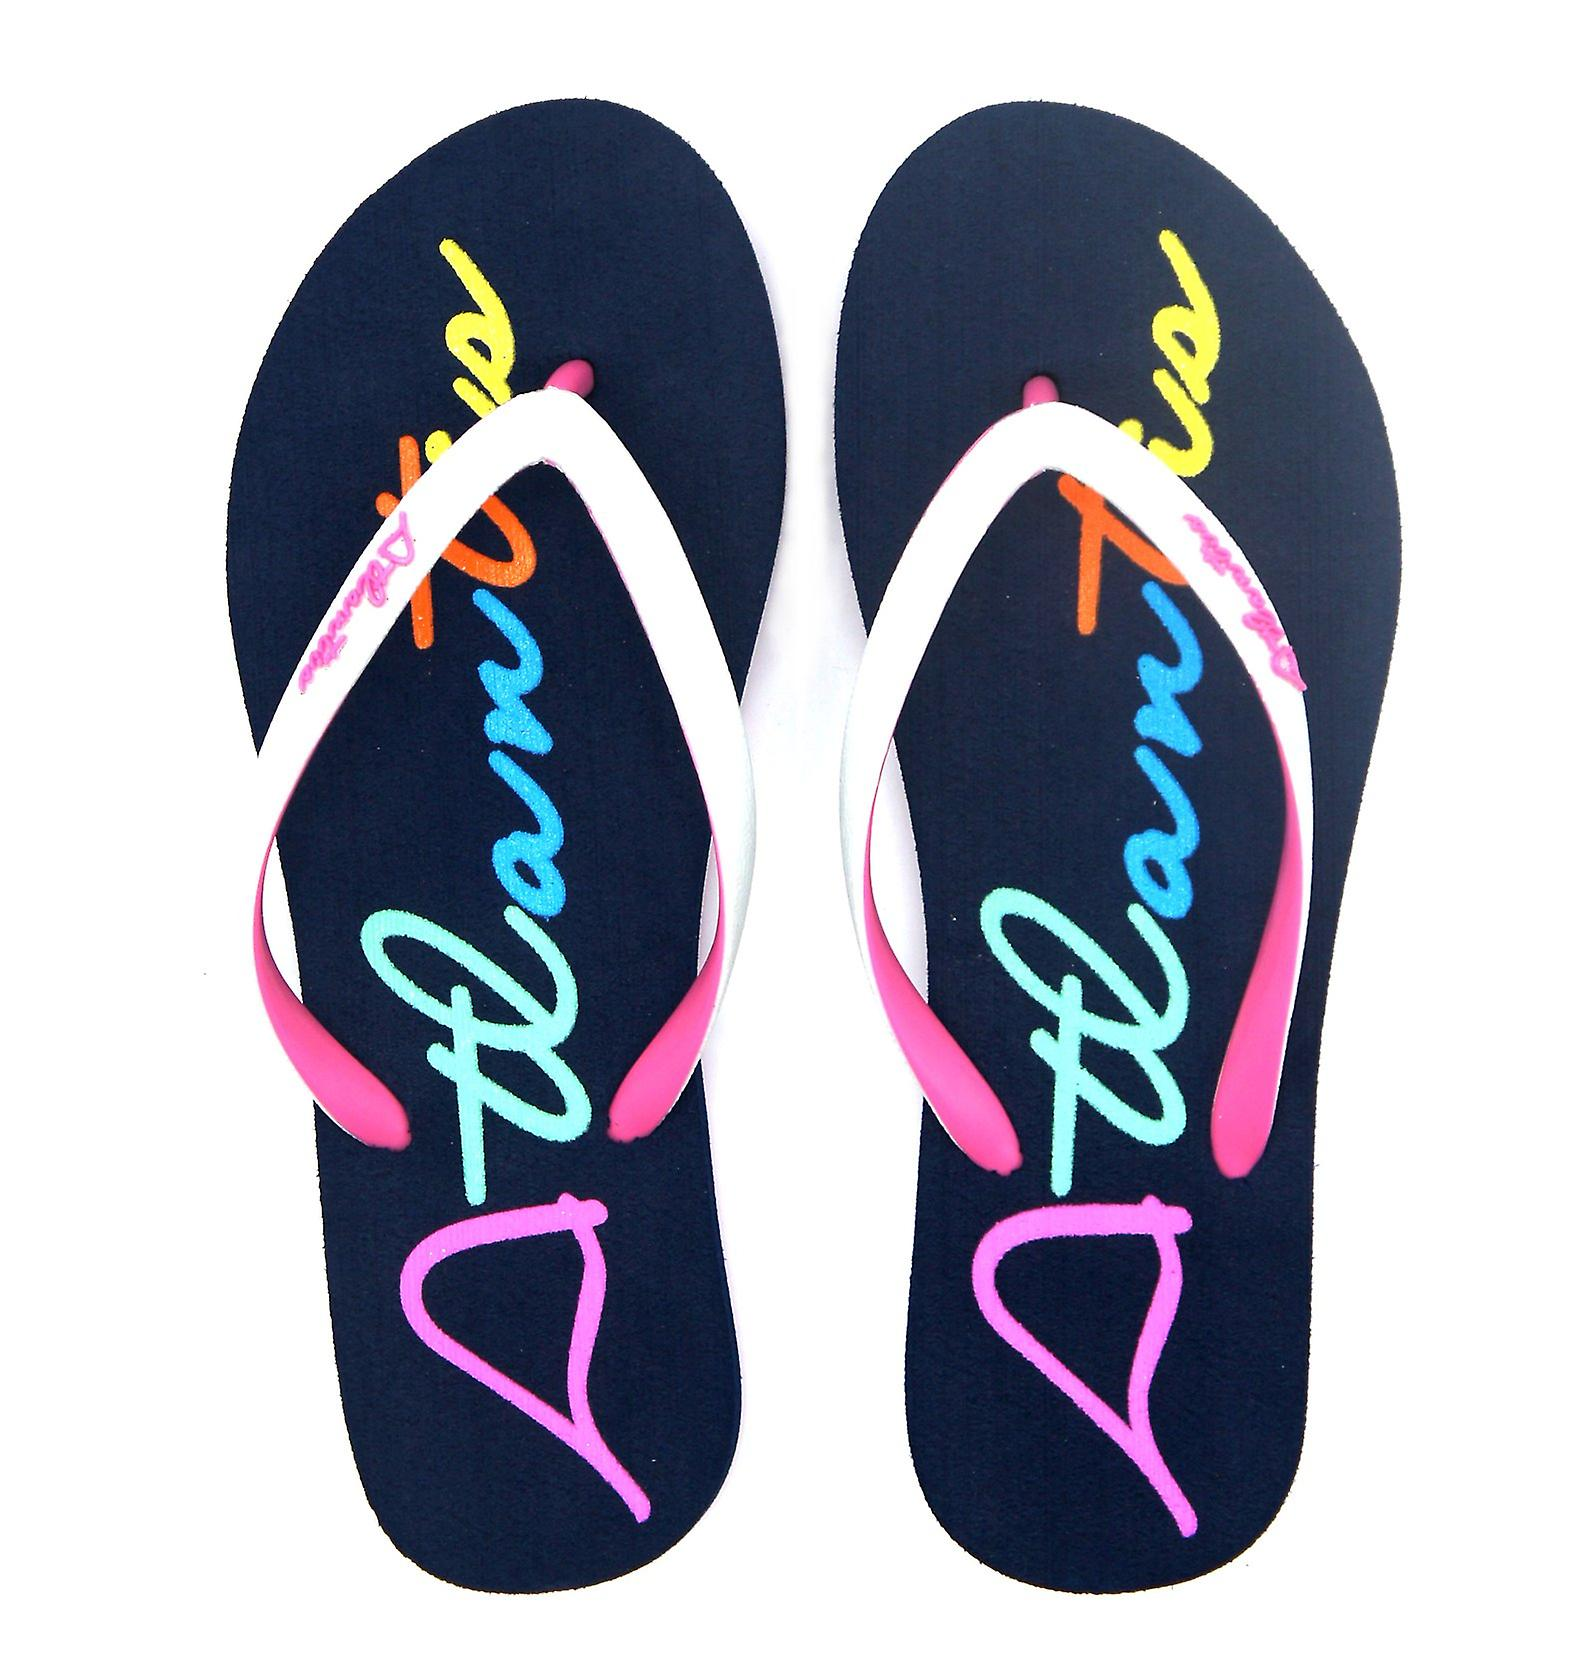 Atlantis Shoes Women Supportive Cushioned Comfortable Sandals Flip Flops Big Logo Navy